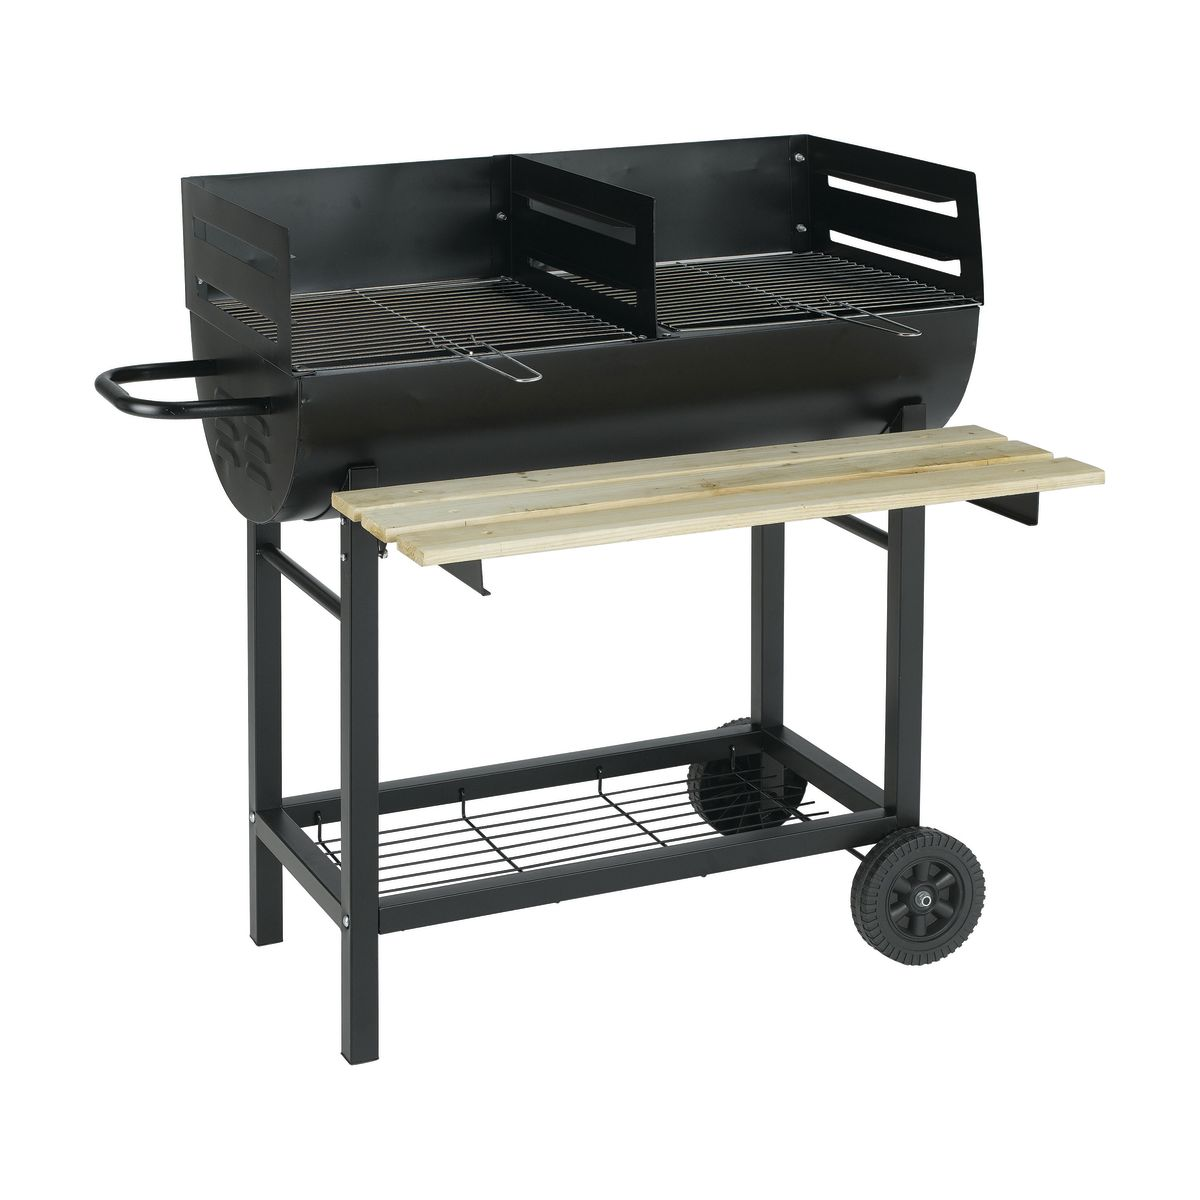 Leroy merlin barbecue weber top barbecue plancha campingaz leroy merlin with leroy merlin - Barbecue electrique leroy merlin ...